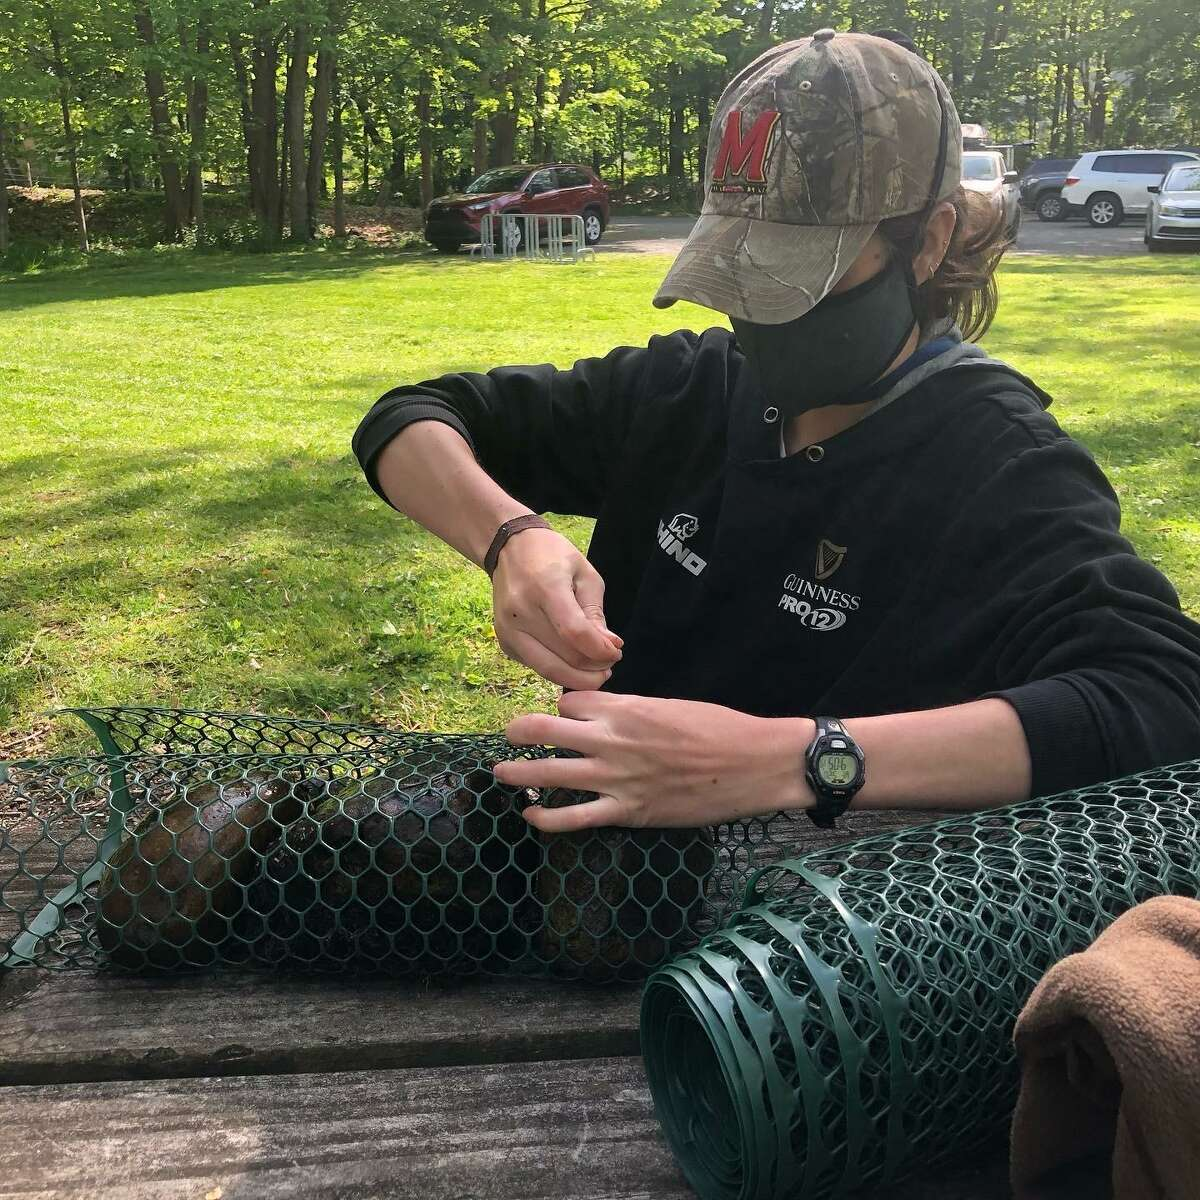 Kelly Nealon, a graduate student at Western Connecticut State University, ties plastic mesh that forms a cage around three rocks - one of which has hornleaf riverweed growing on it. It is hoped the plant will spread from the one rock to the others.